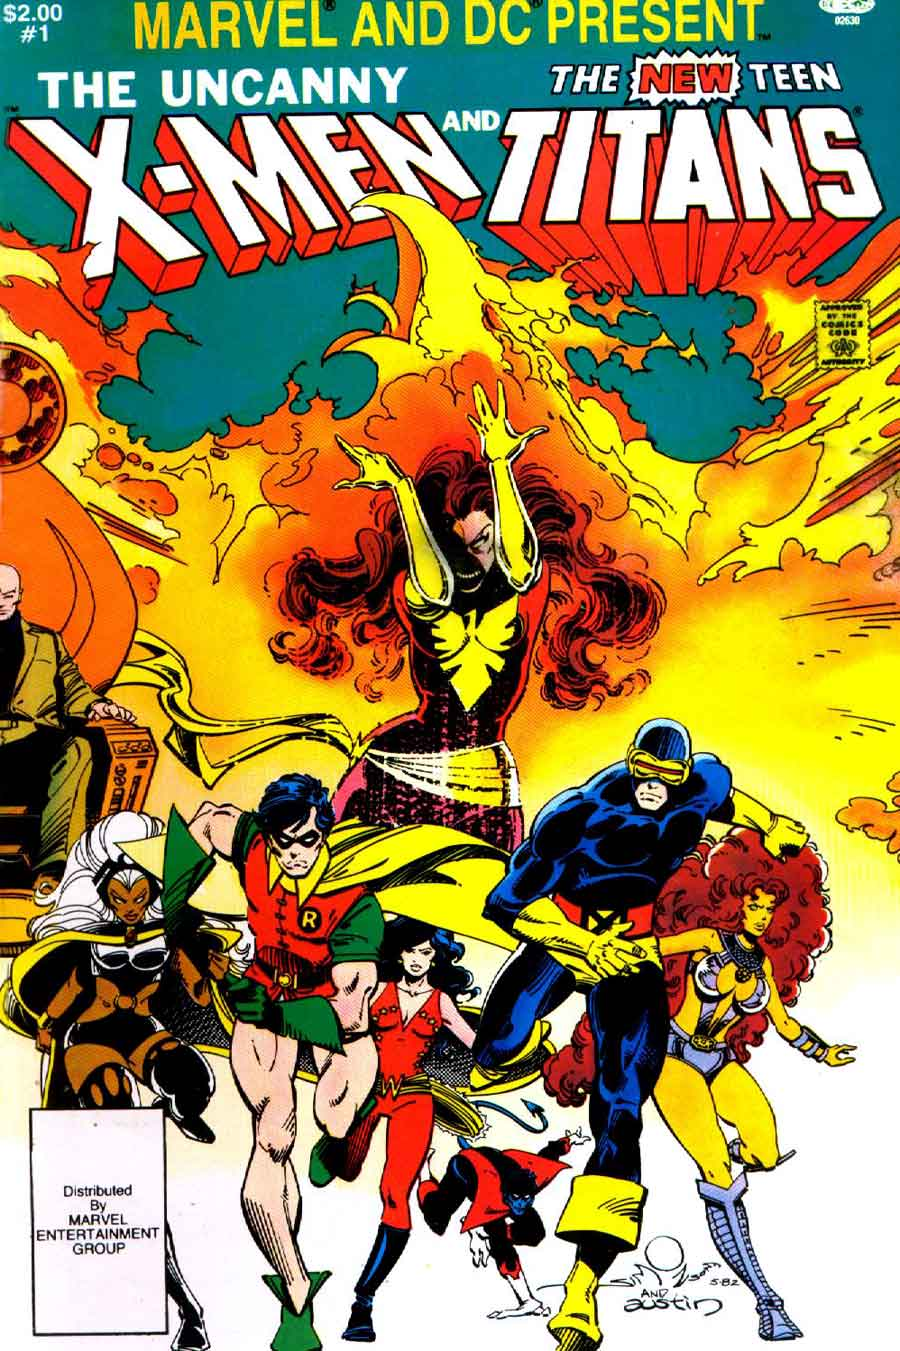 The First Teen Titans